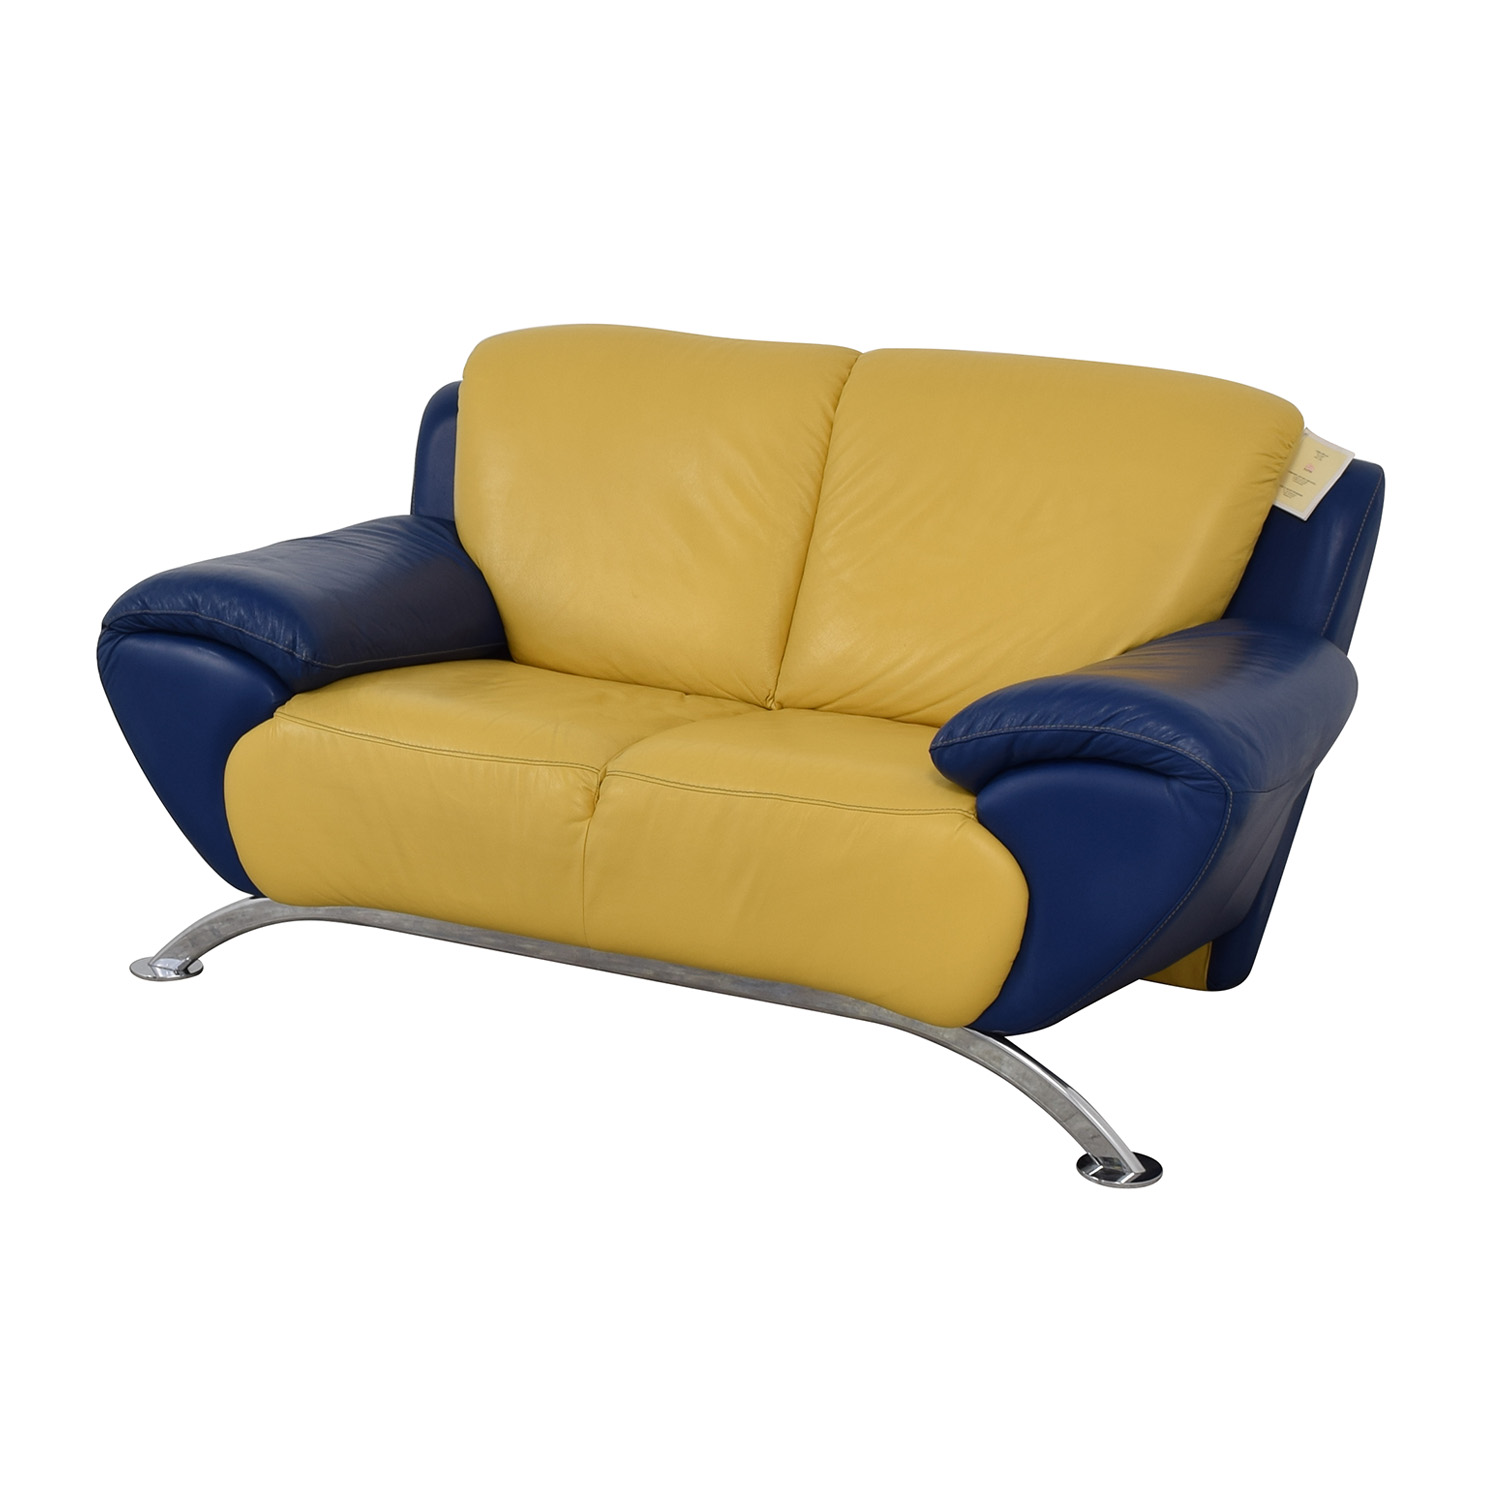 Satis Satis Modern Yellow and Blue Leather Loveseat for sale